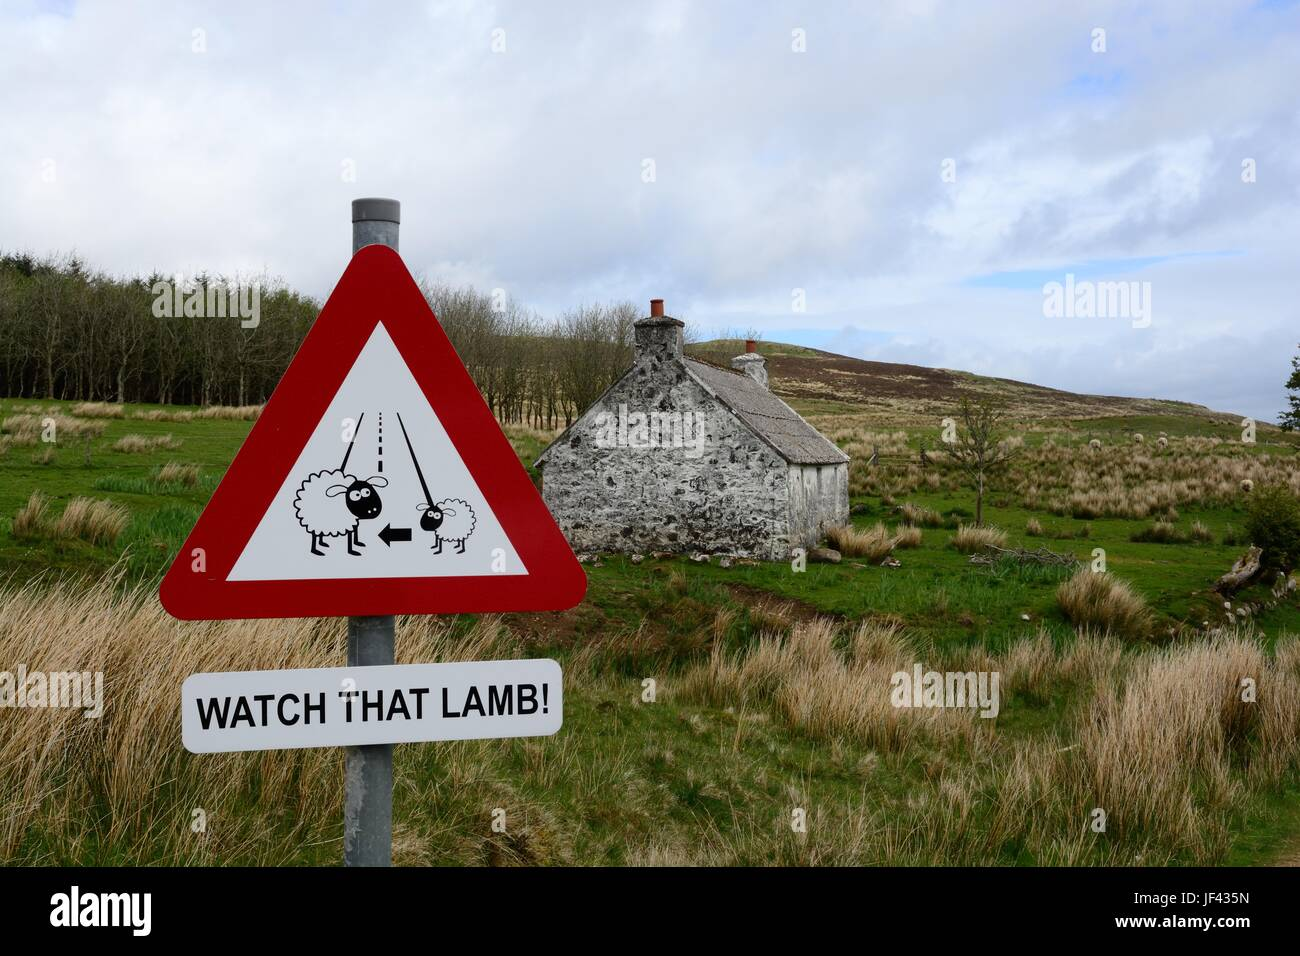 watch that lamb road sign on a country lane Clunacnoc Isle of Skye Scotalnd - Stock Image